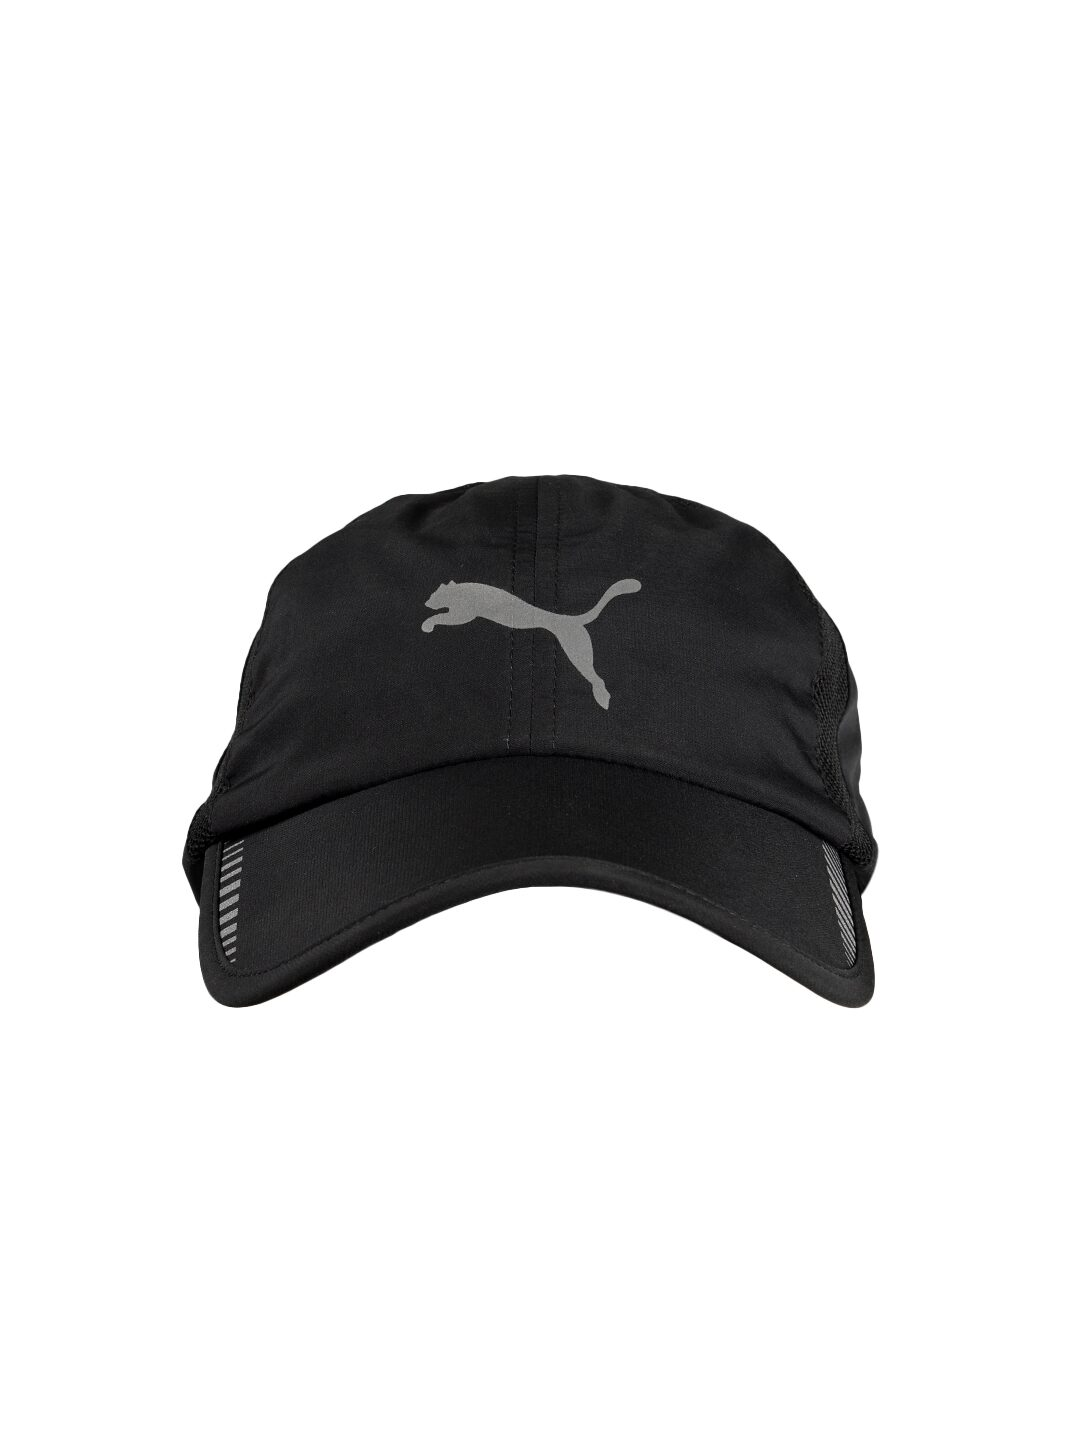 1da5da10 Puma 84316601 Men Black Complete Running Cap - Best Price in ...